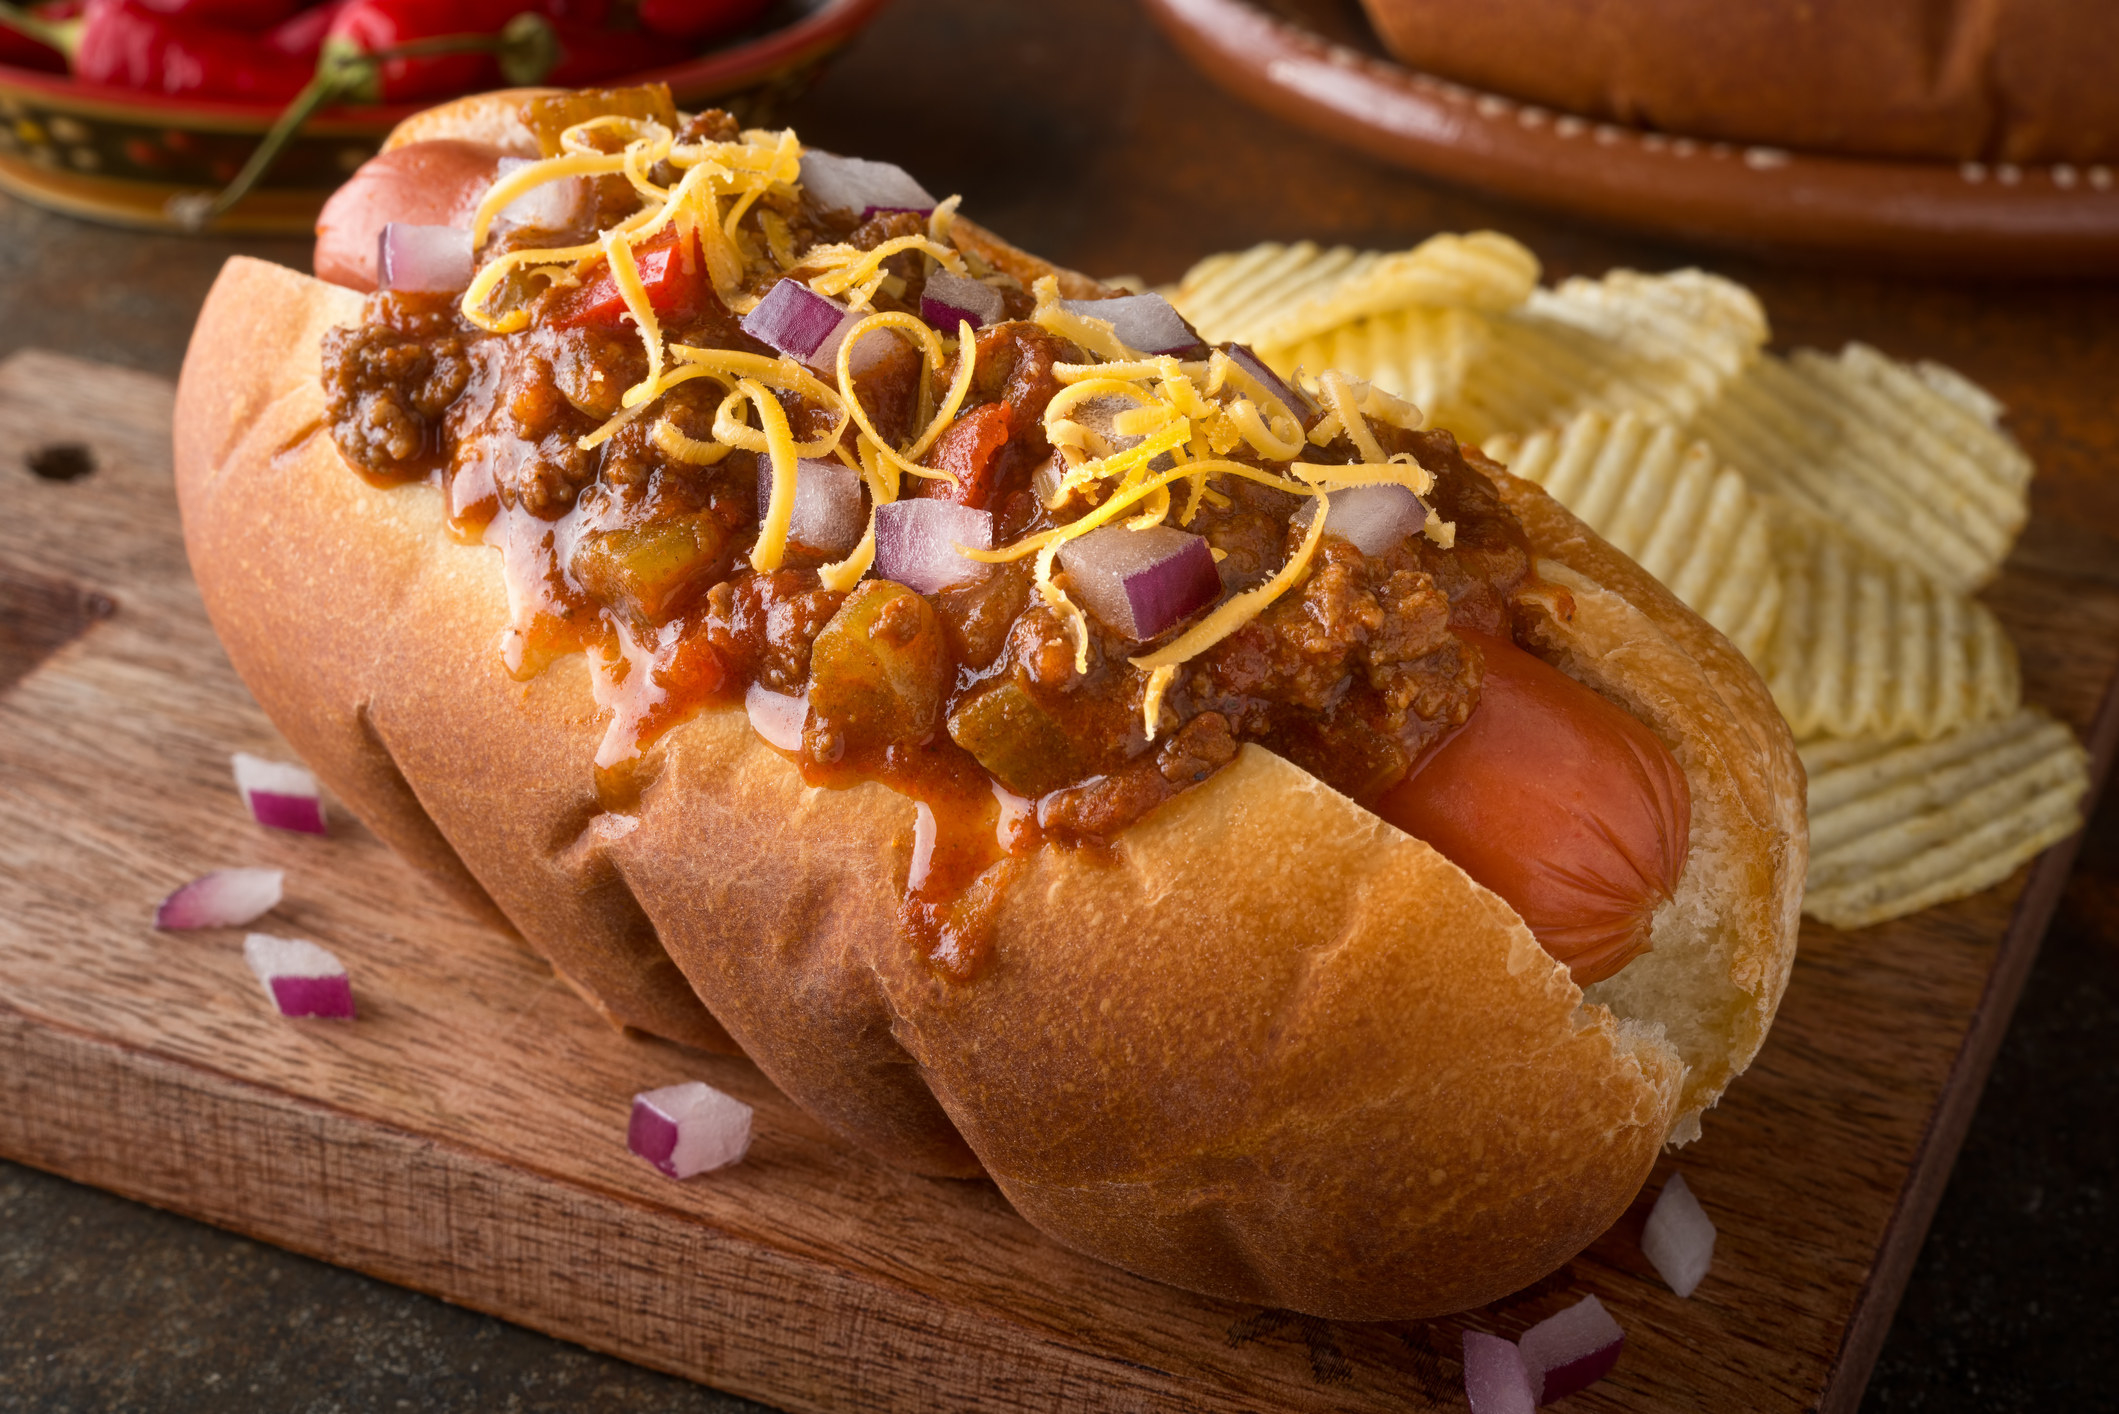 A hot dog topped with chili, cheese, and onions.